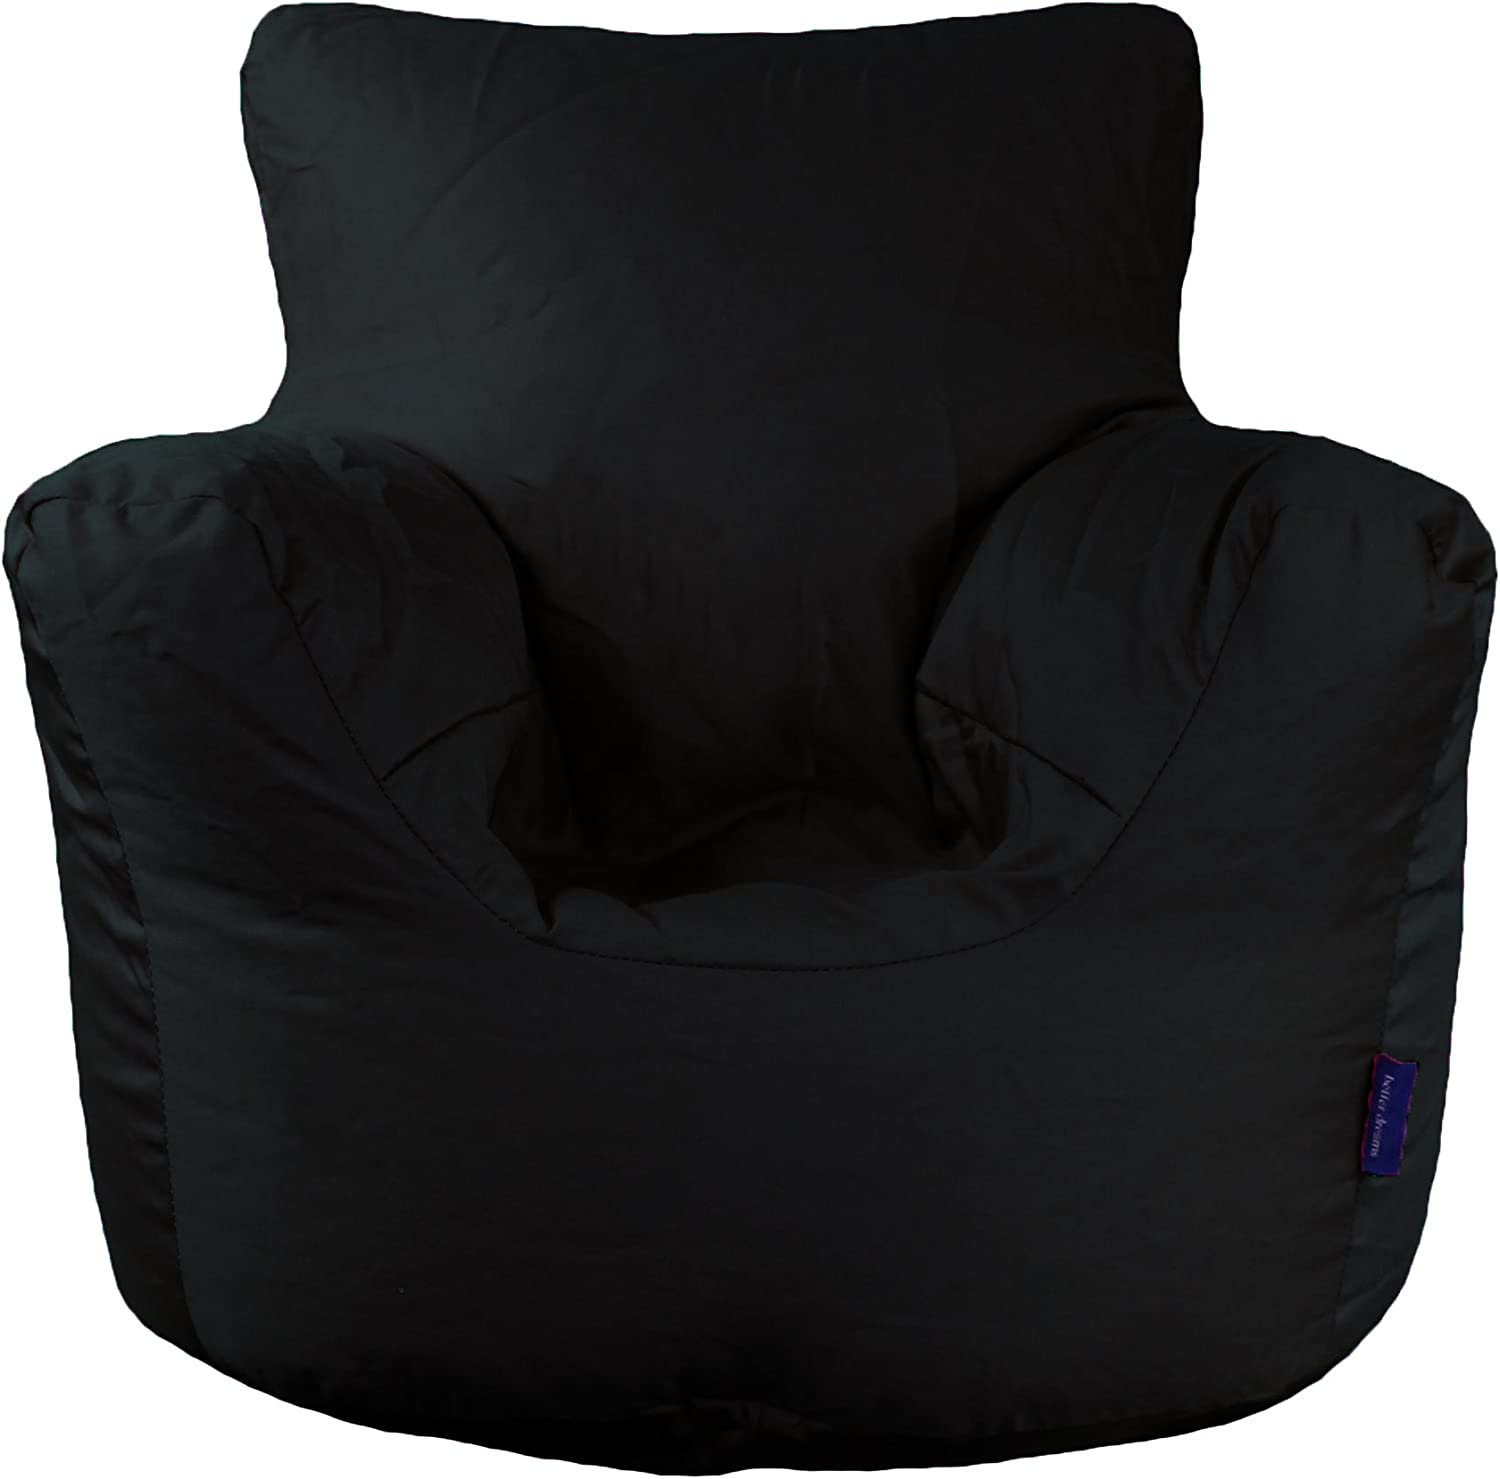 Childrens Bean Bag Chair In Two Sizes And Nine Colours 100/% Cotton Twill Black, Small 50x50x50cm